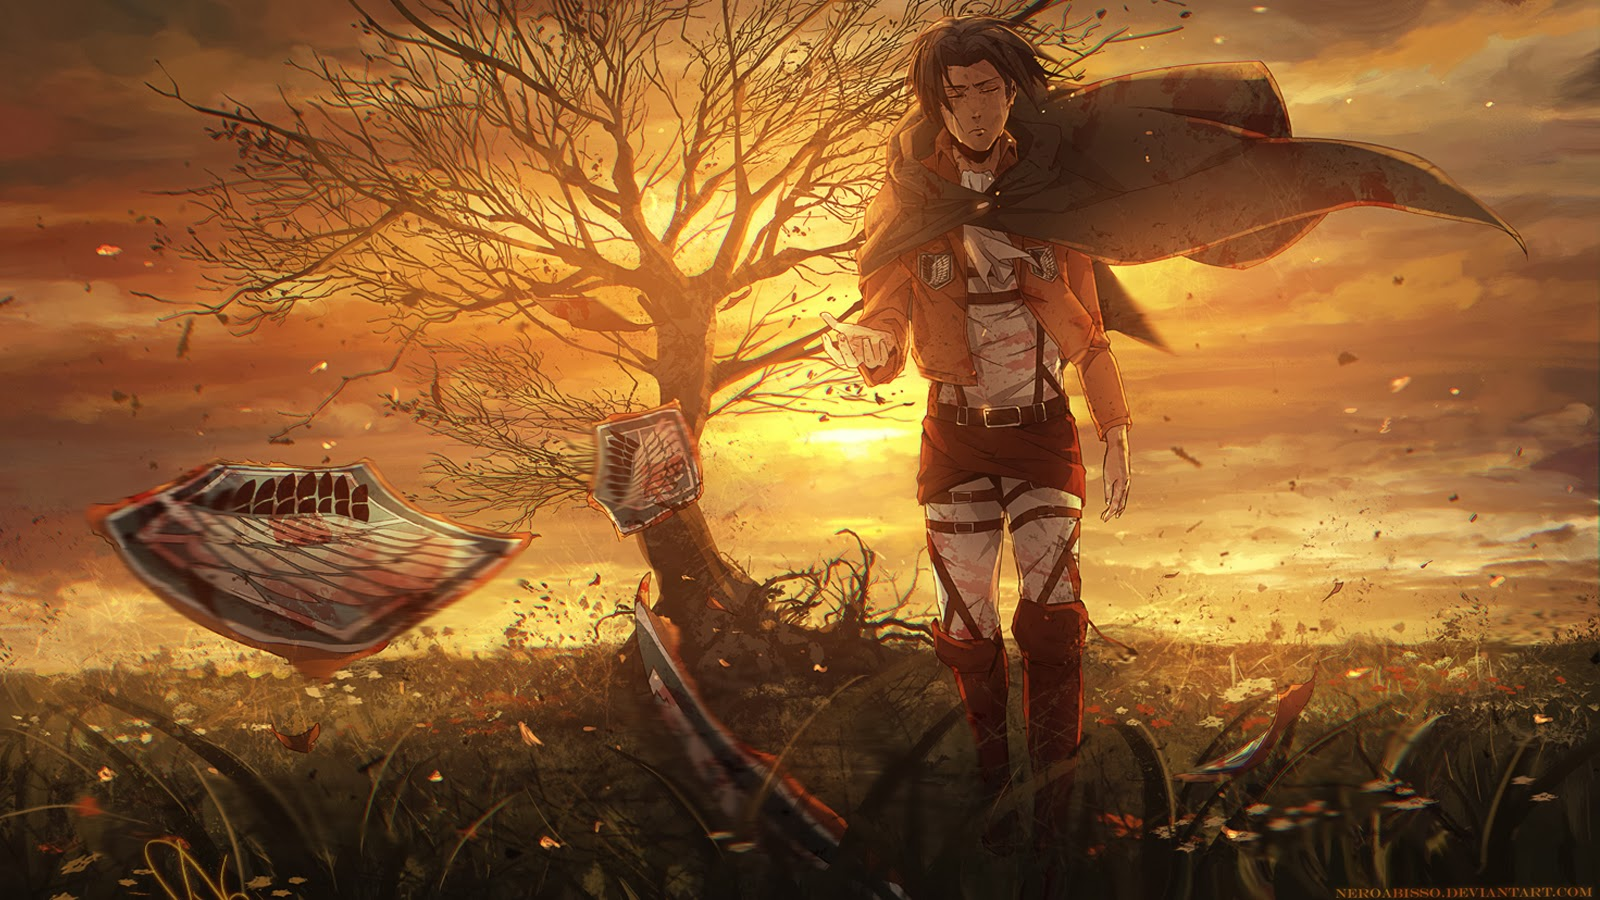 Free Download Attack On Titan Levi Scouting Legion 6l Wallpaper Hd 1600x900 For Your Desktop Mobile Tablet Explore 50 Attack On Titan Levi Wallpaper Aot Levi Wallpaper Attack On